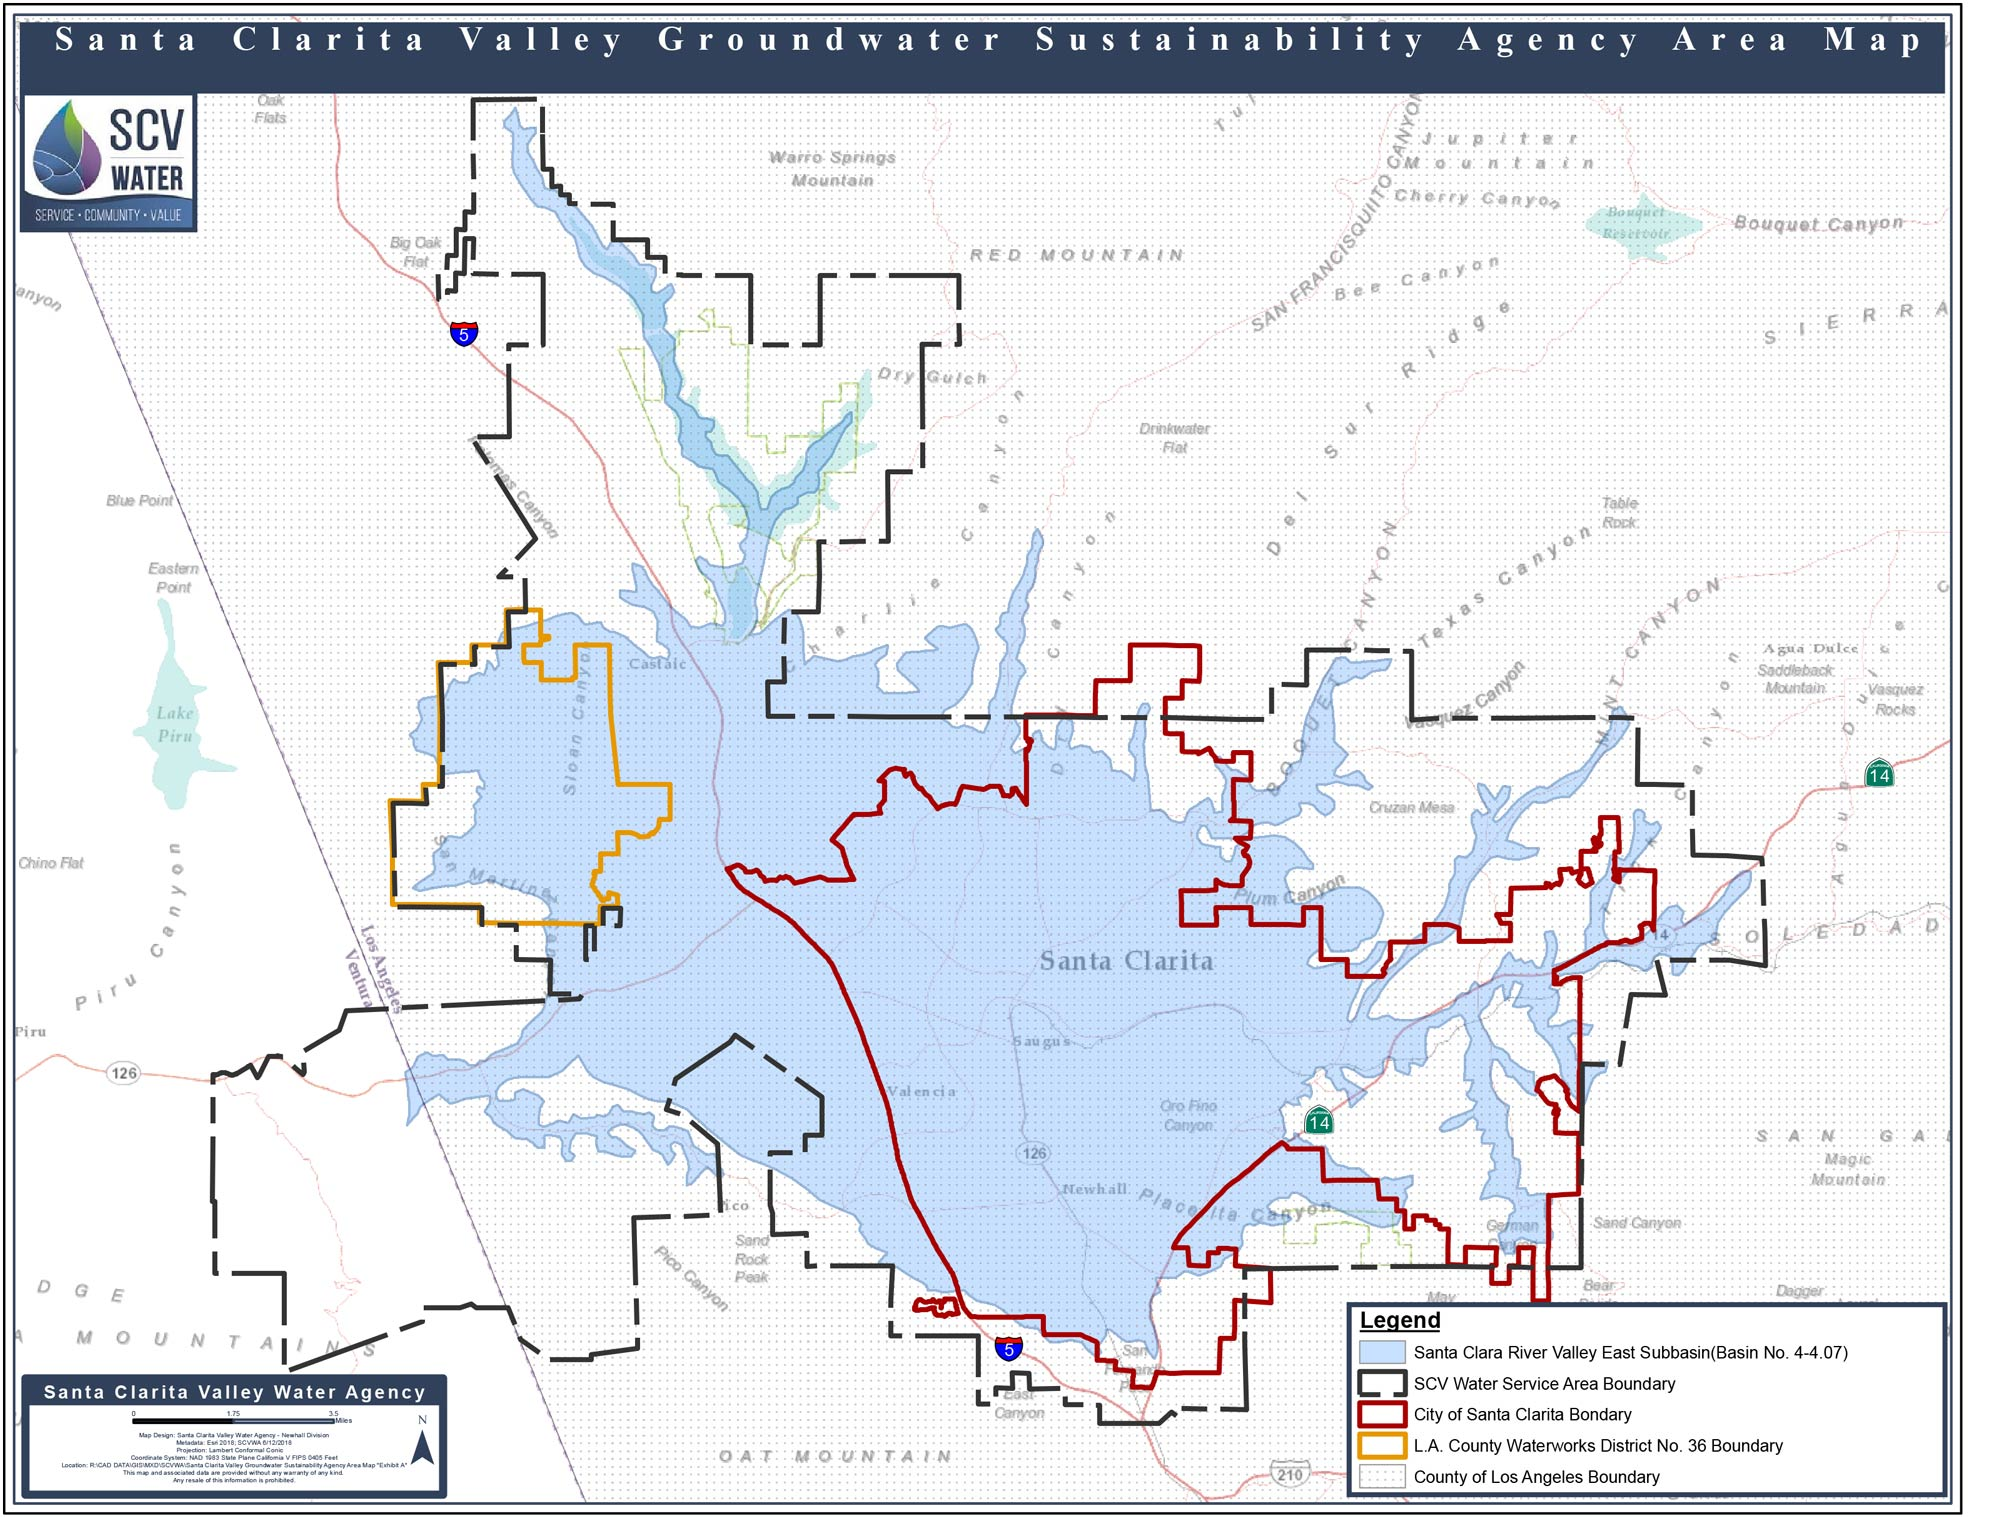 Santa Clarita Valley Groundwater_Sustainability Agency Area Map